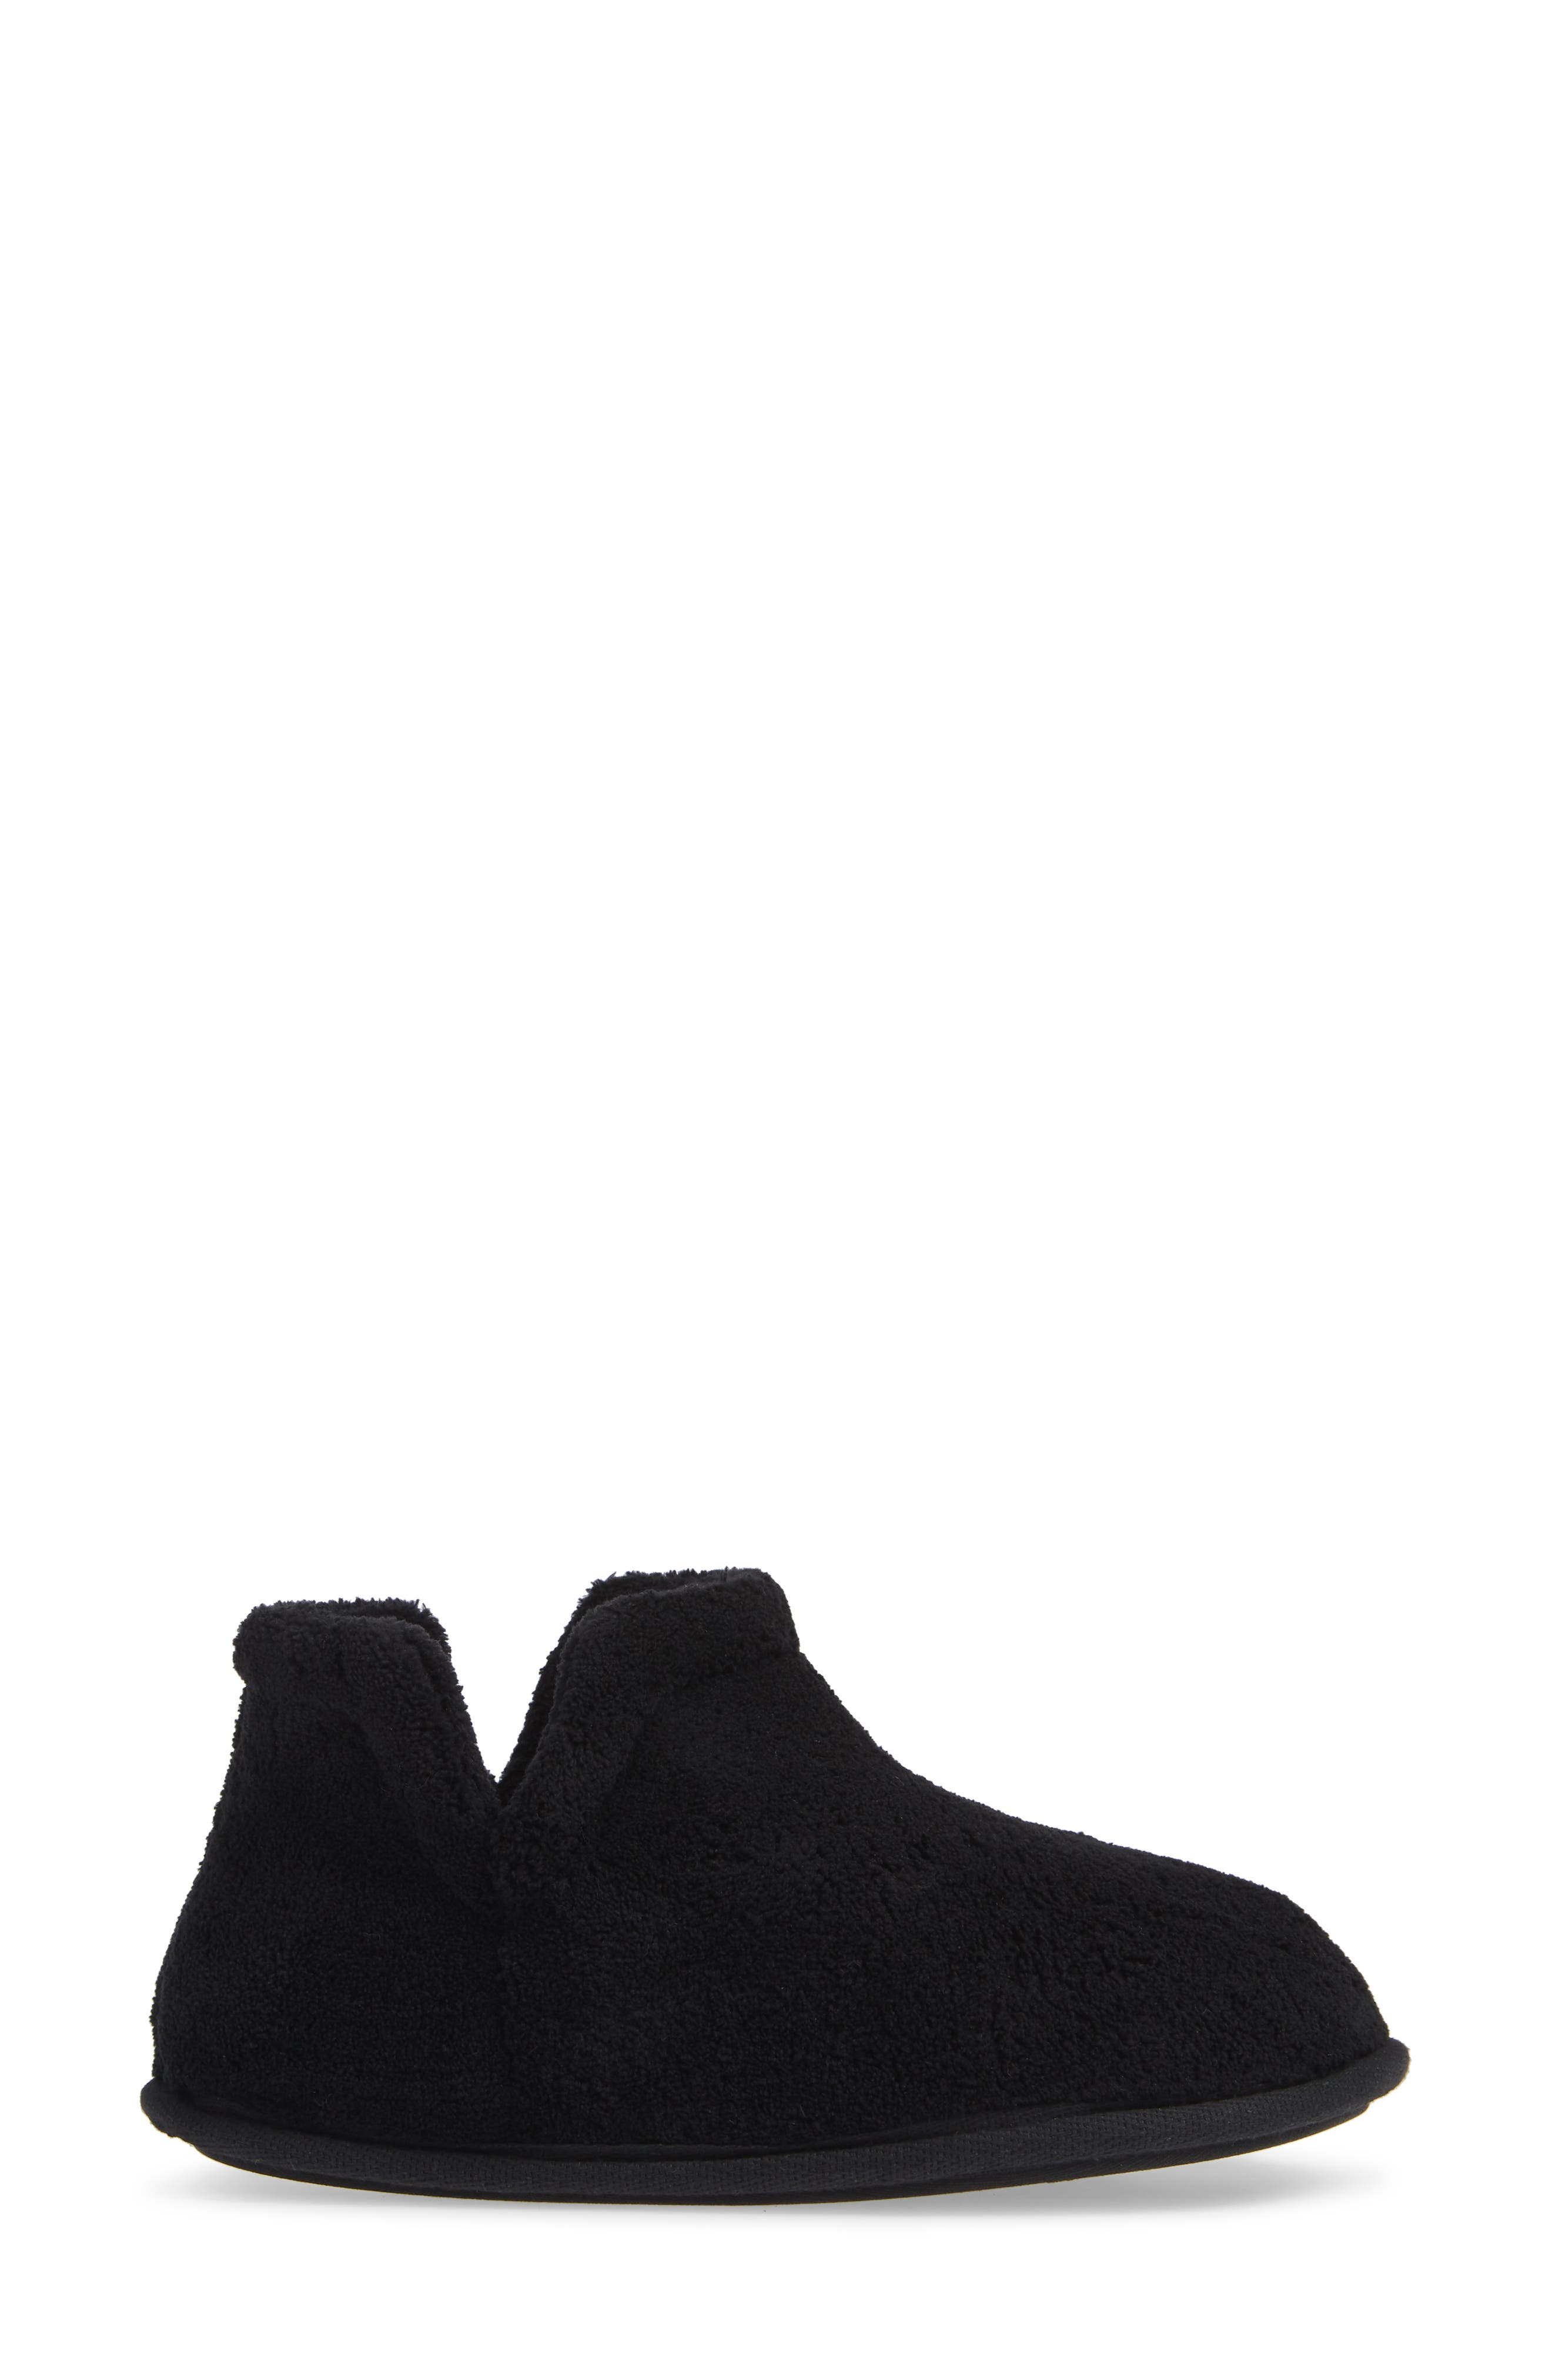 Evalyn Slipper Bootie,                             Alternate thumbnail 3, color,                             BLACK FABRIC